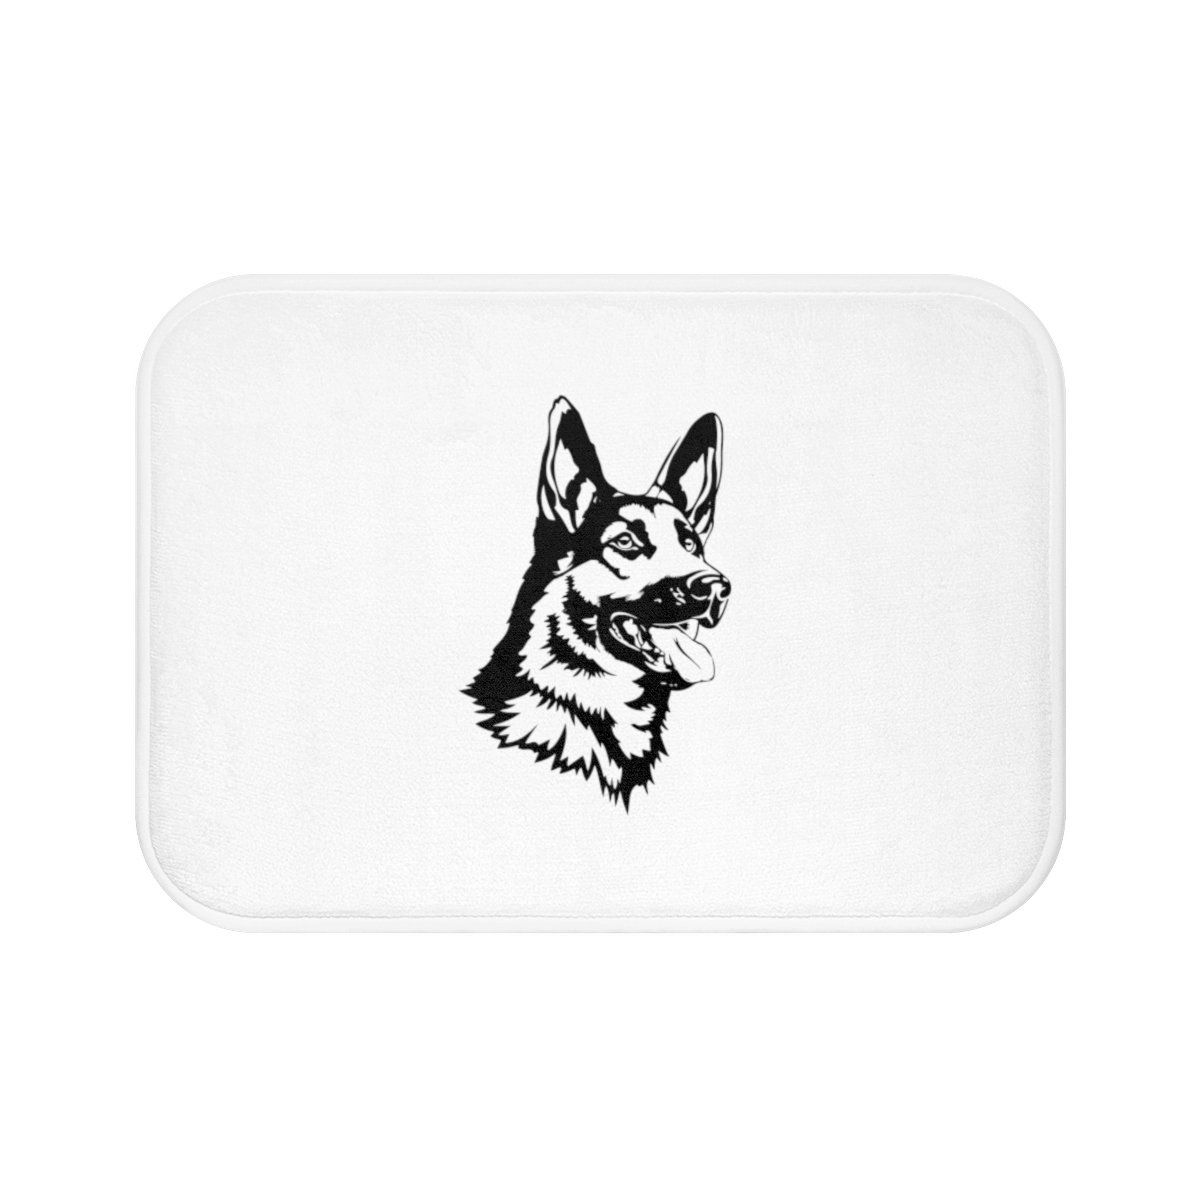 German Shepherd Bath Mat   Bath mat, German shepherds and Products